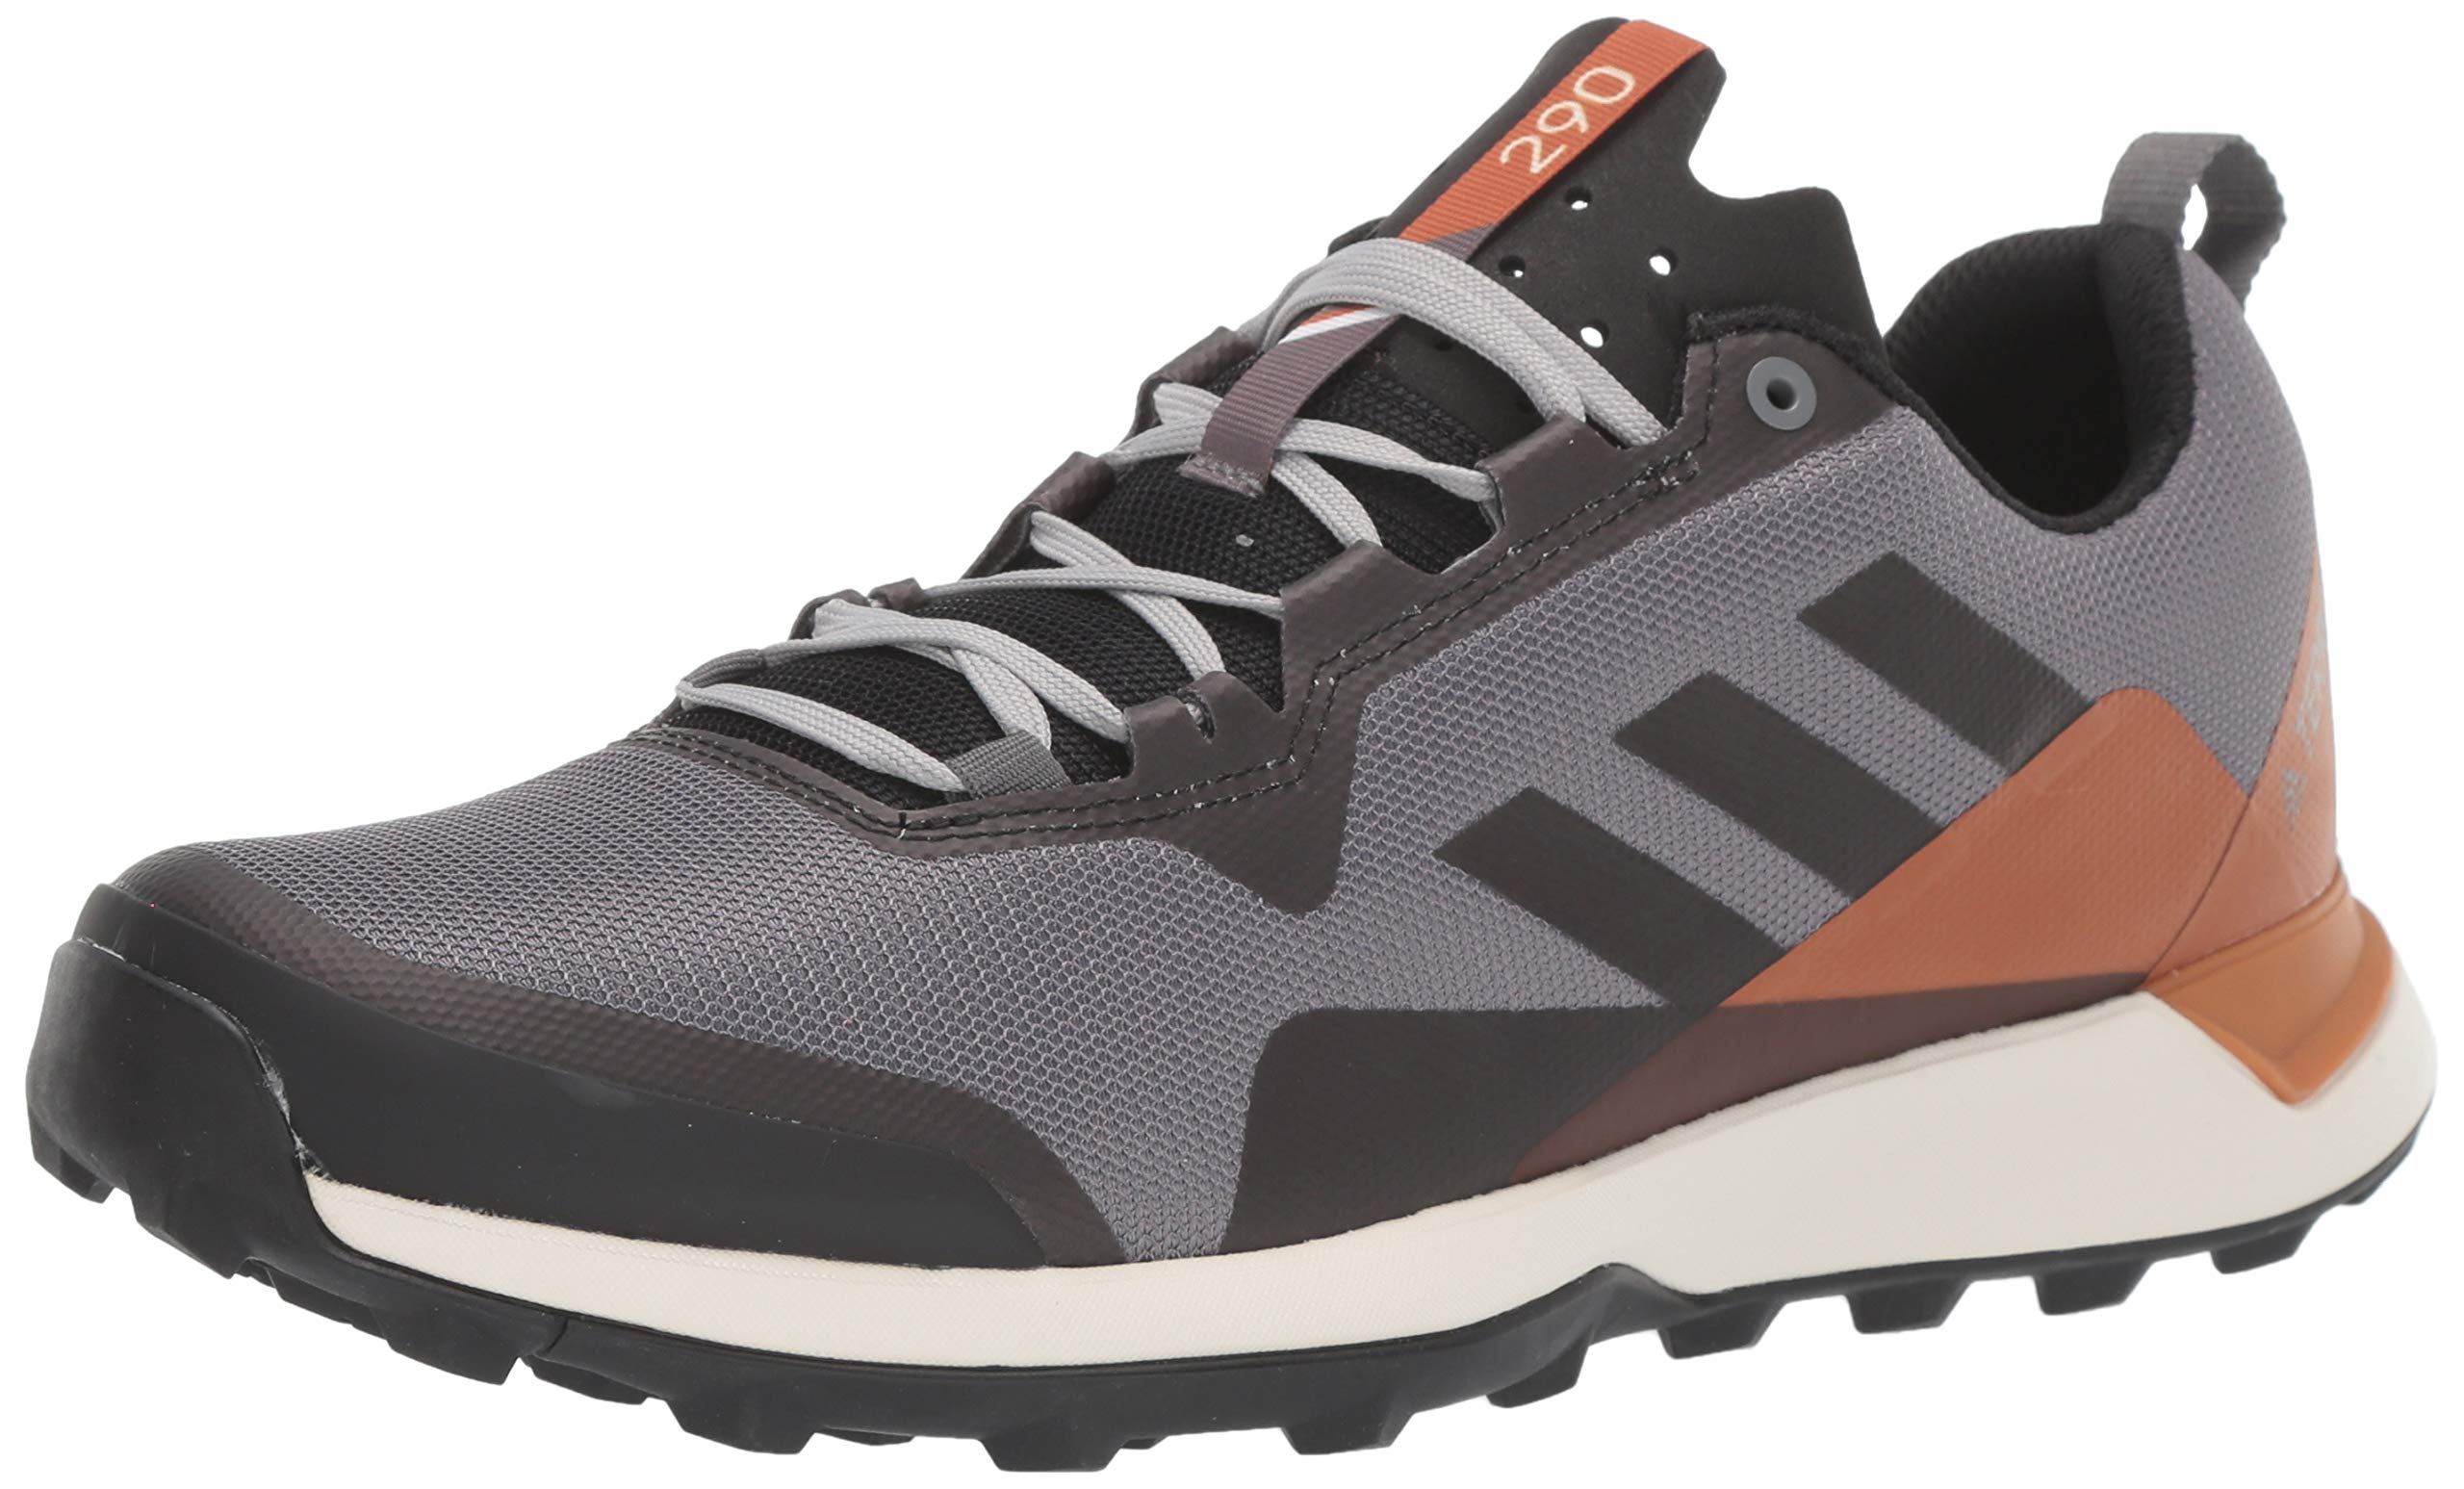 adidas outdoor Women's Terrex CMTK Trail Running Shoe, Grey Four/Black/TECH Copper, 10 D US by adidas outdoor